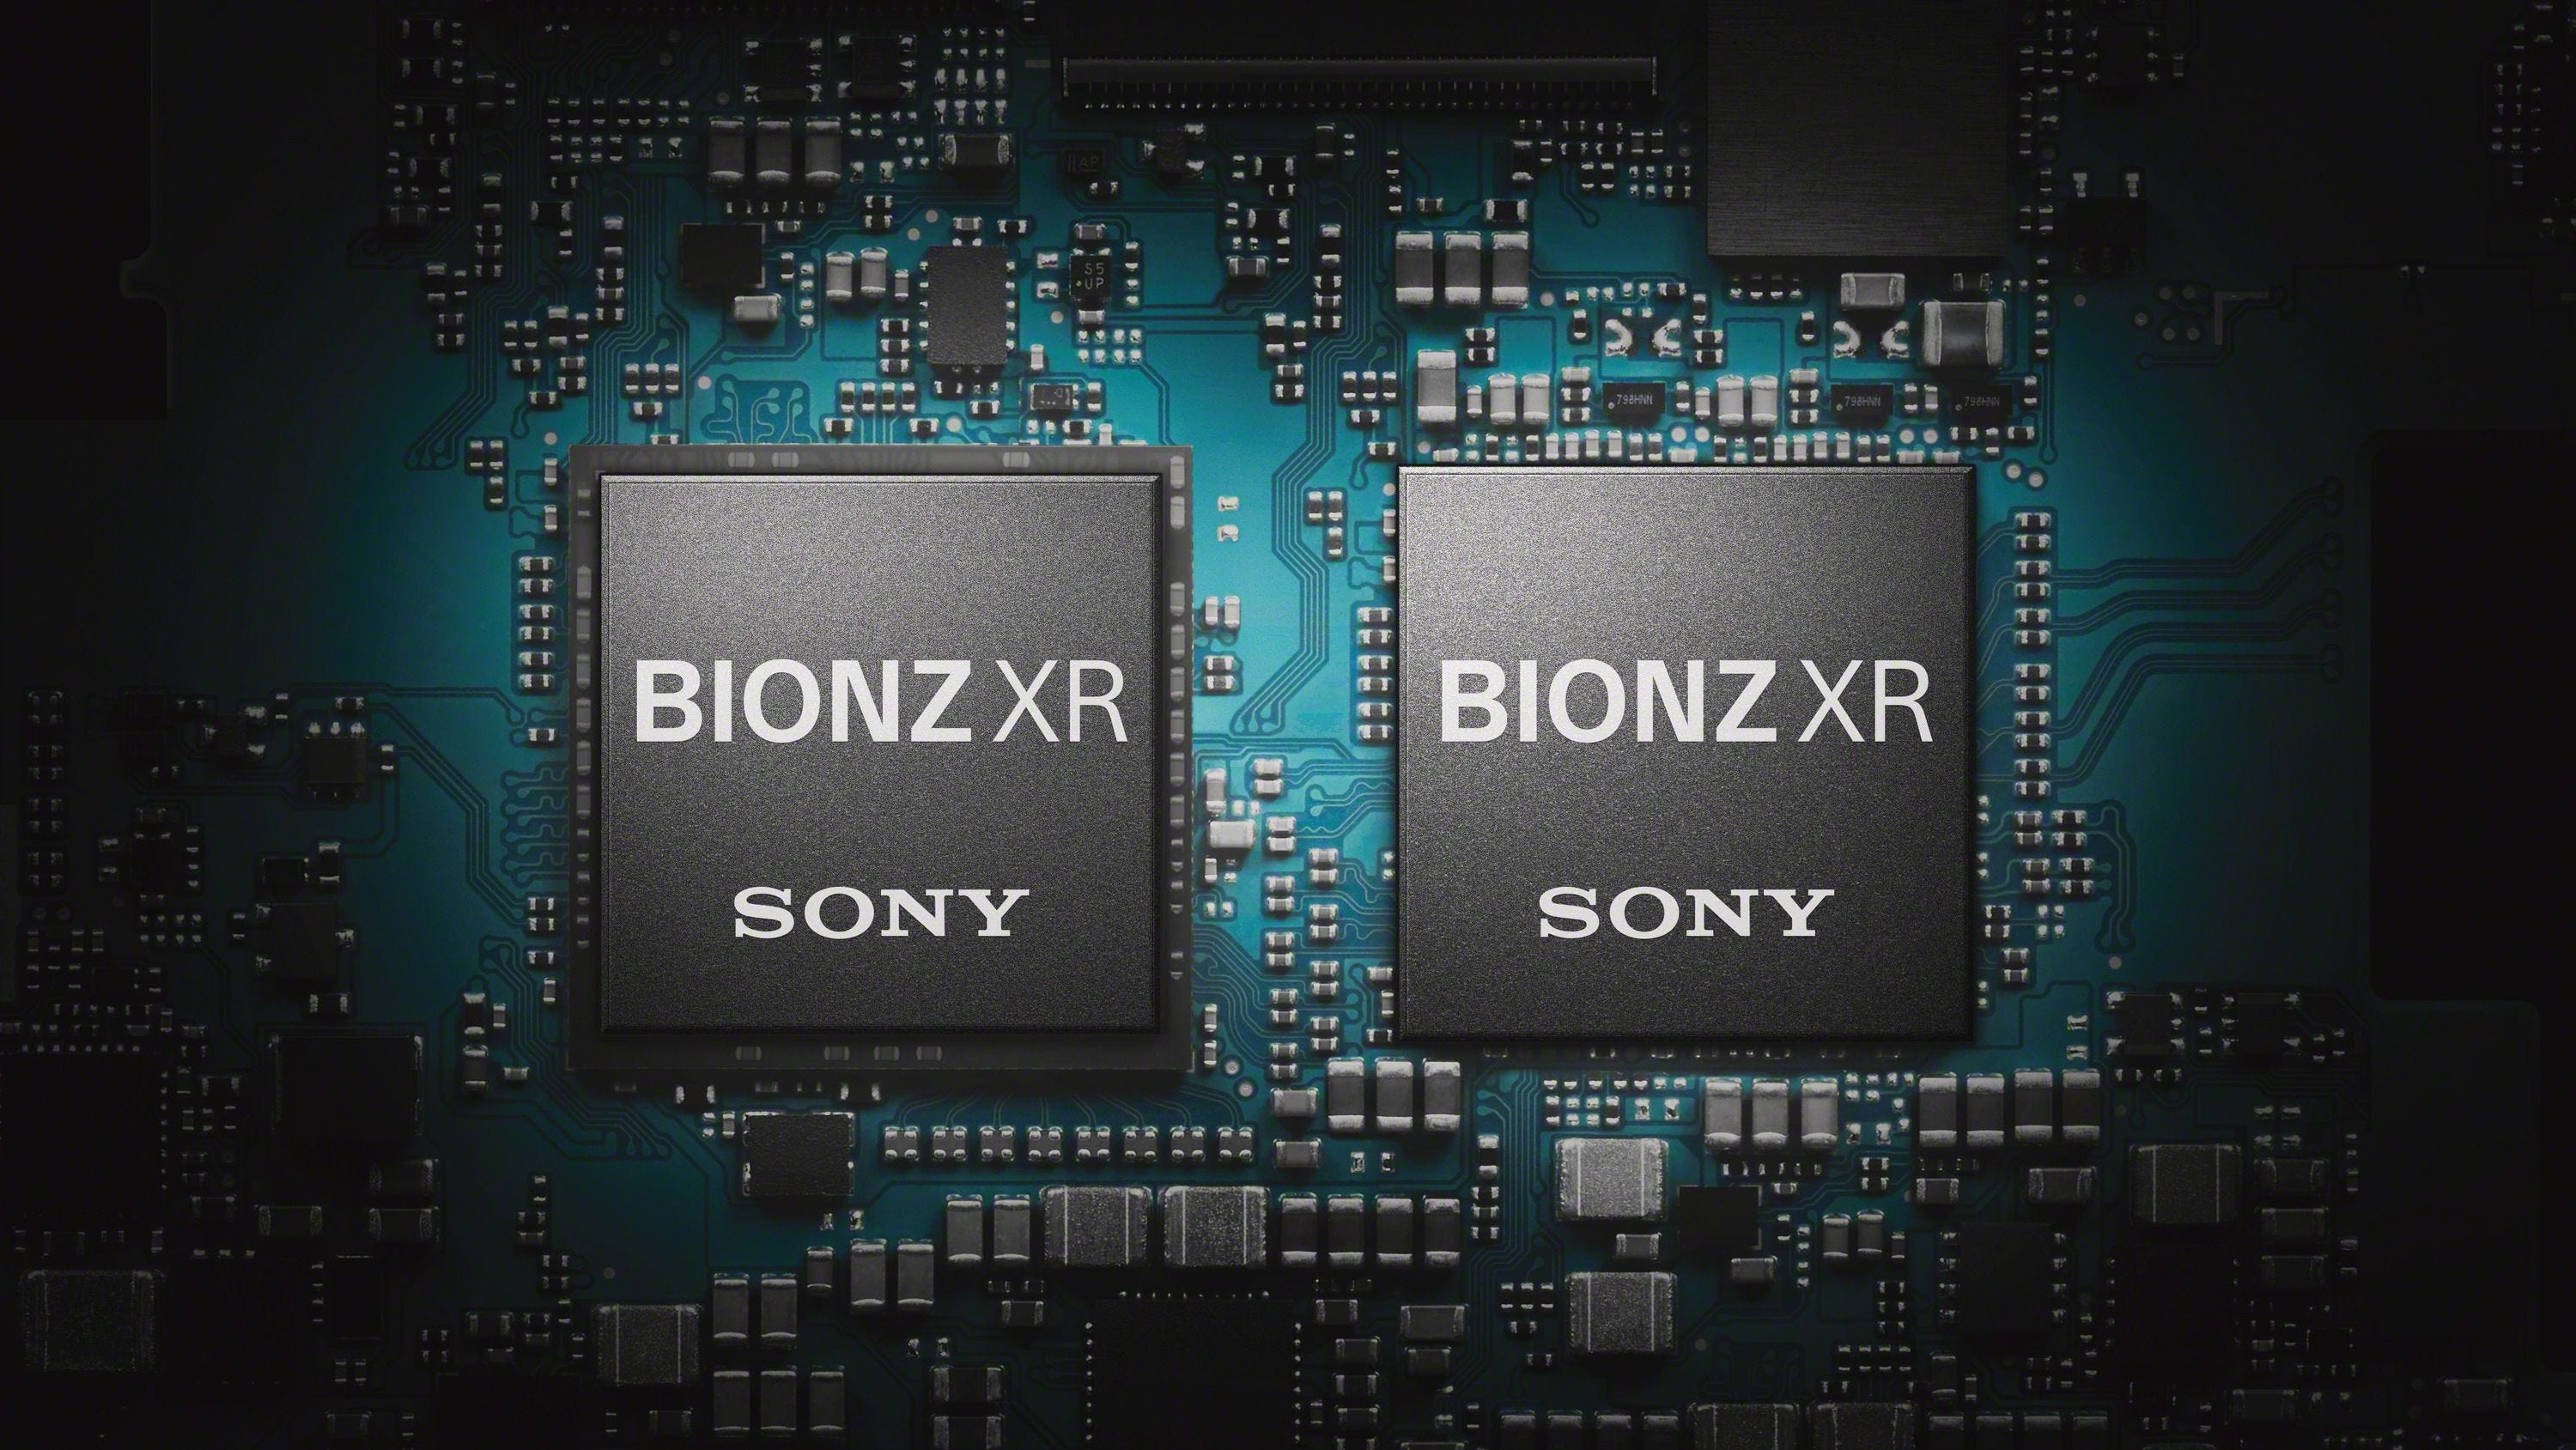 8x More Powerful, Next Generation BIONZ XR Image Processing Engine.